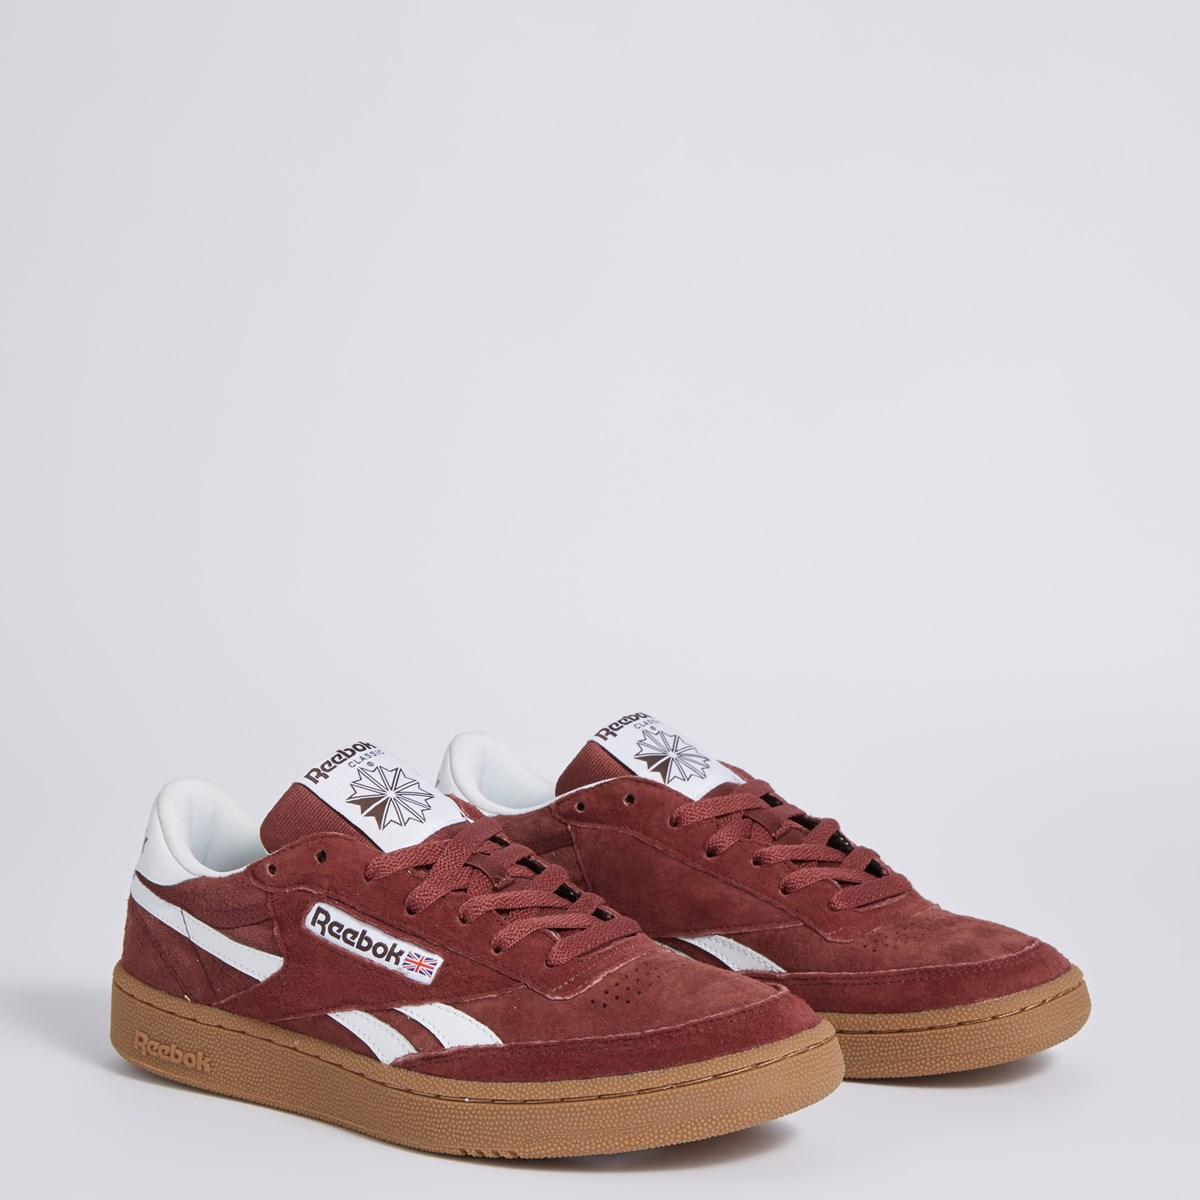 Men's Revenge Plus MU Sneaker in Burgundy